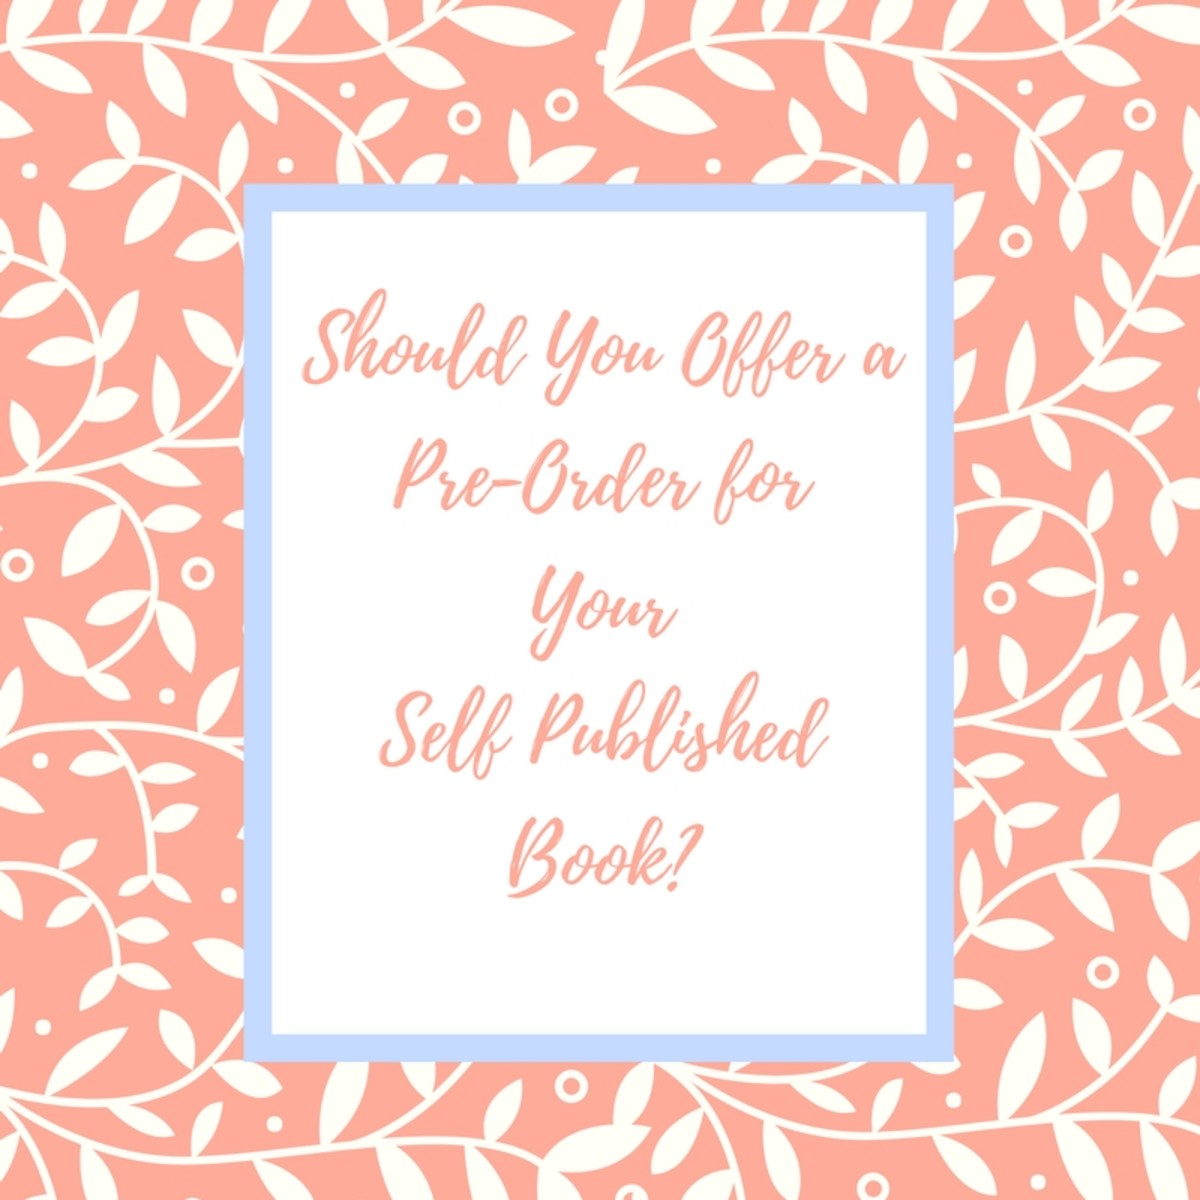 Should You Do a Pre-Order to Market Your Self-Published Book?